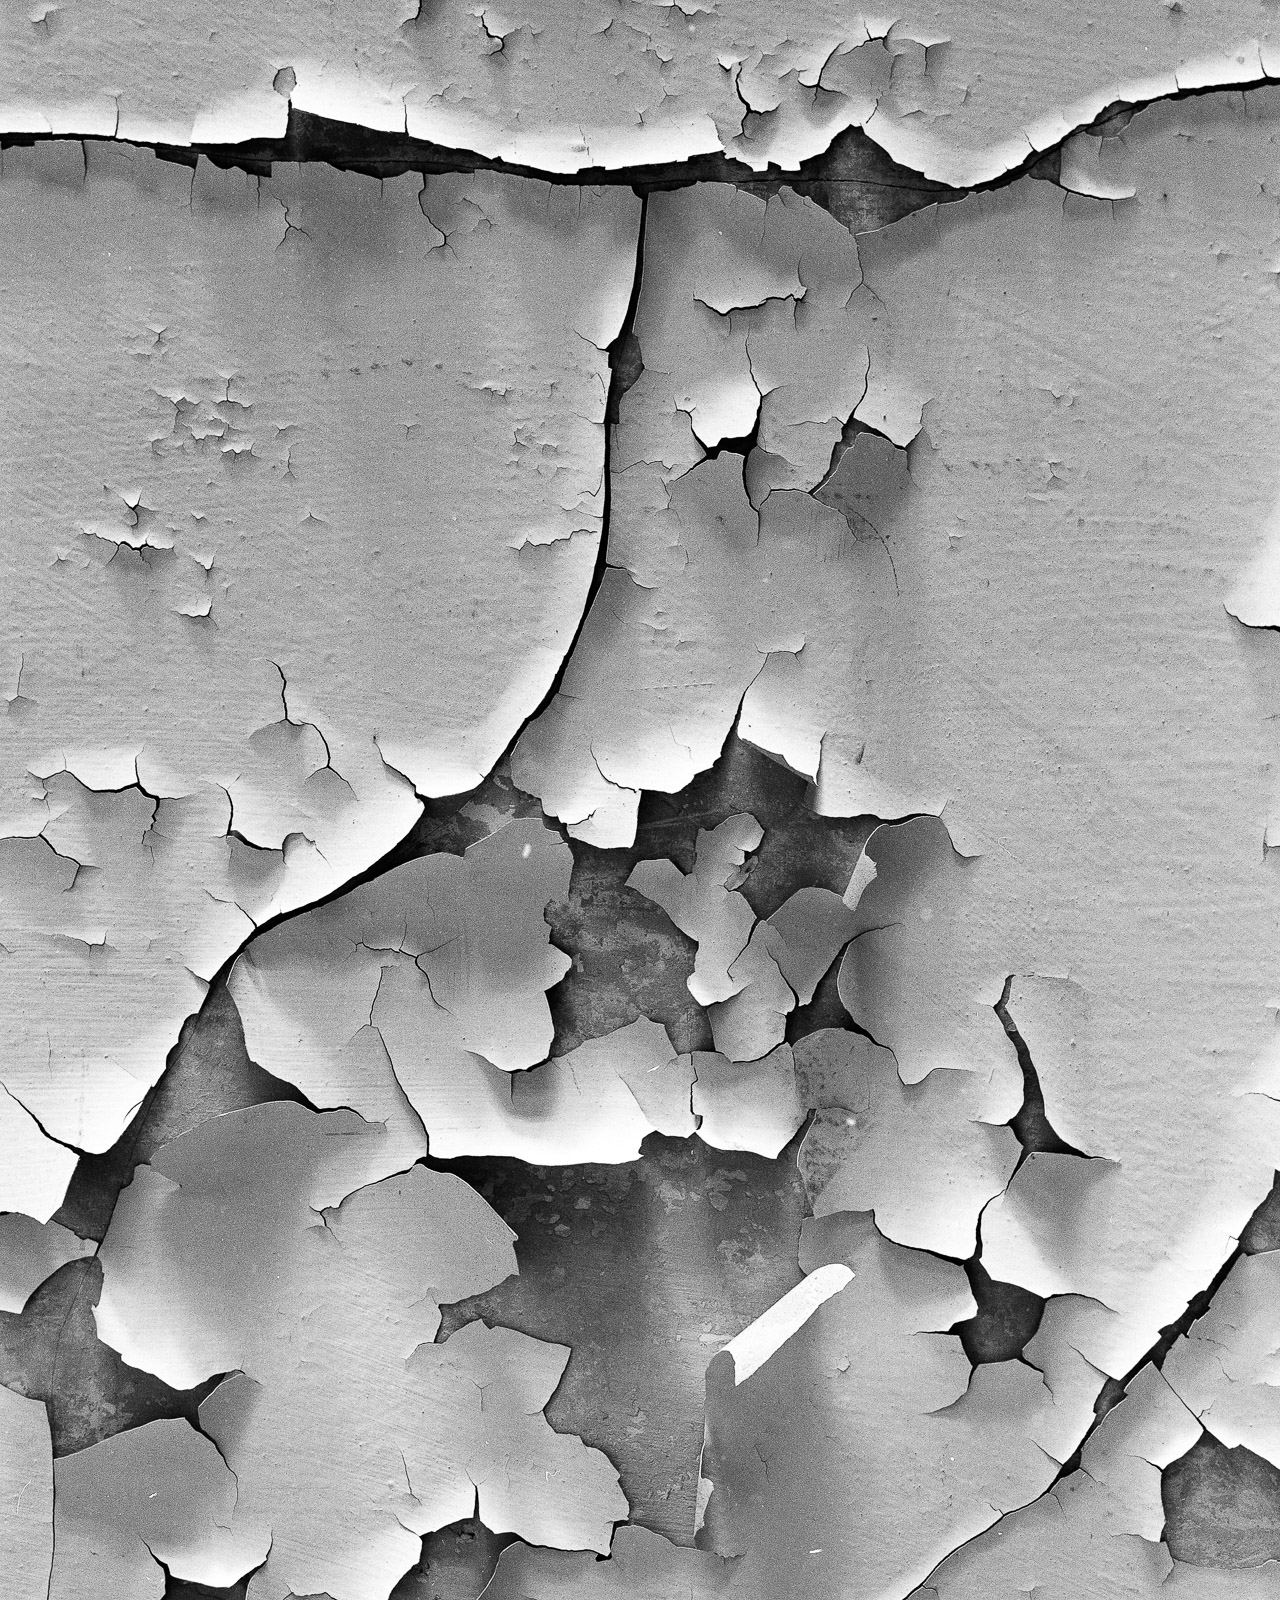 Peeling paint on facade, place unknown